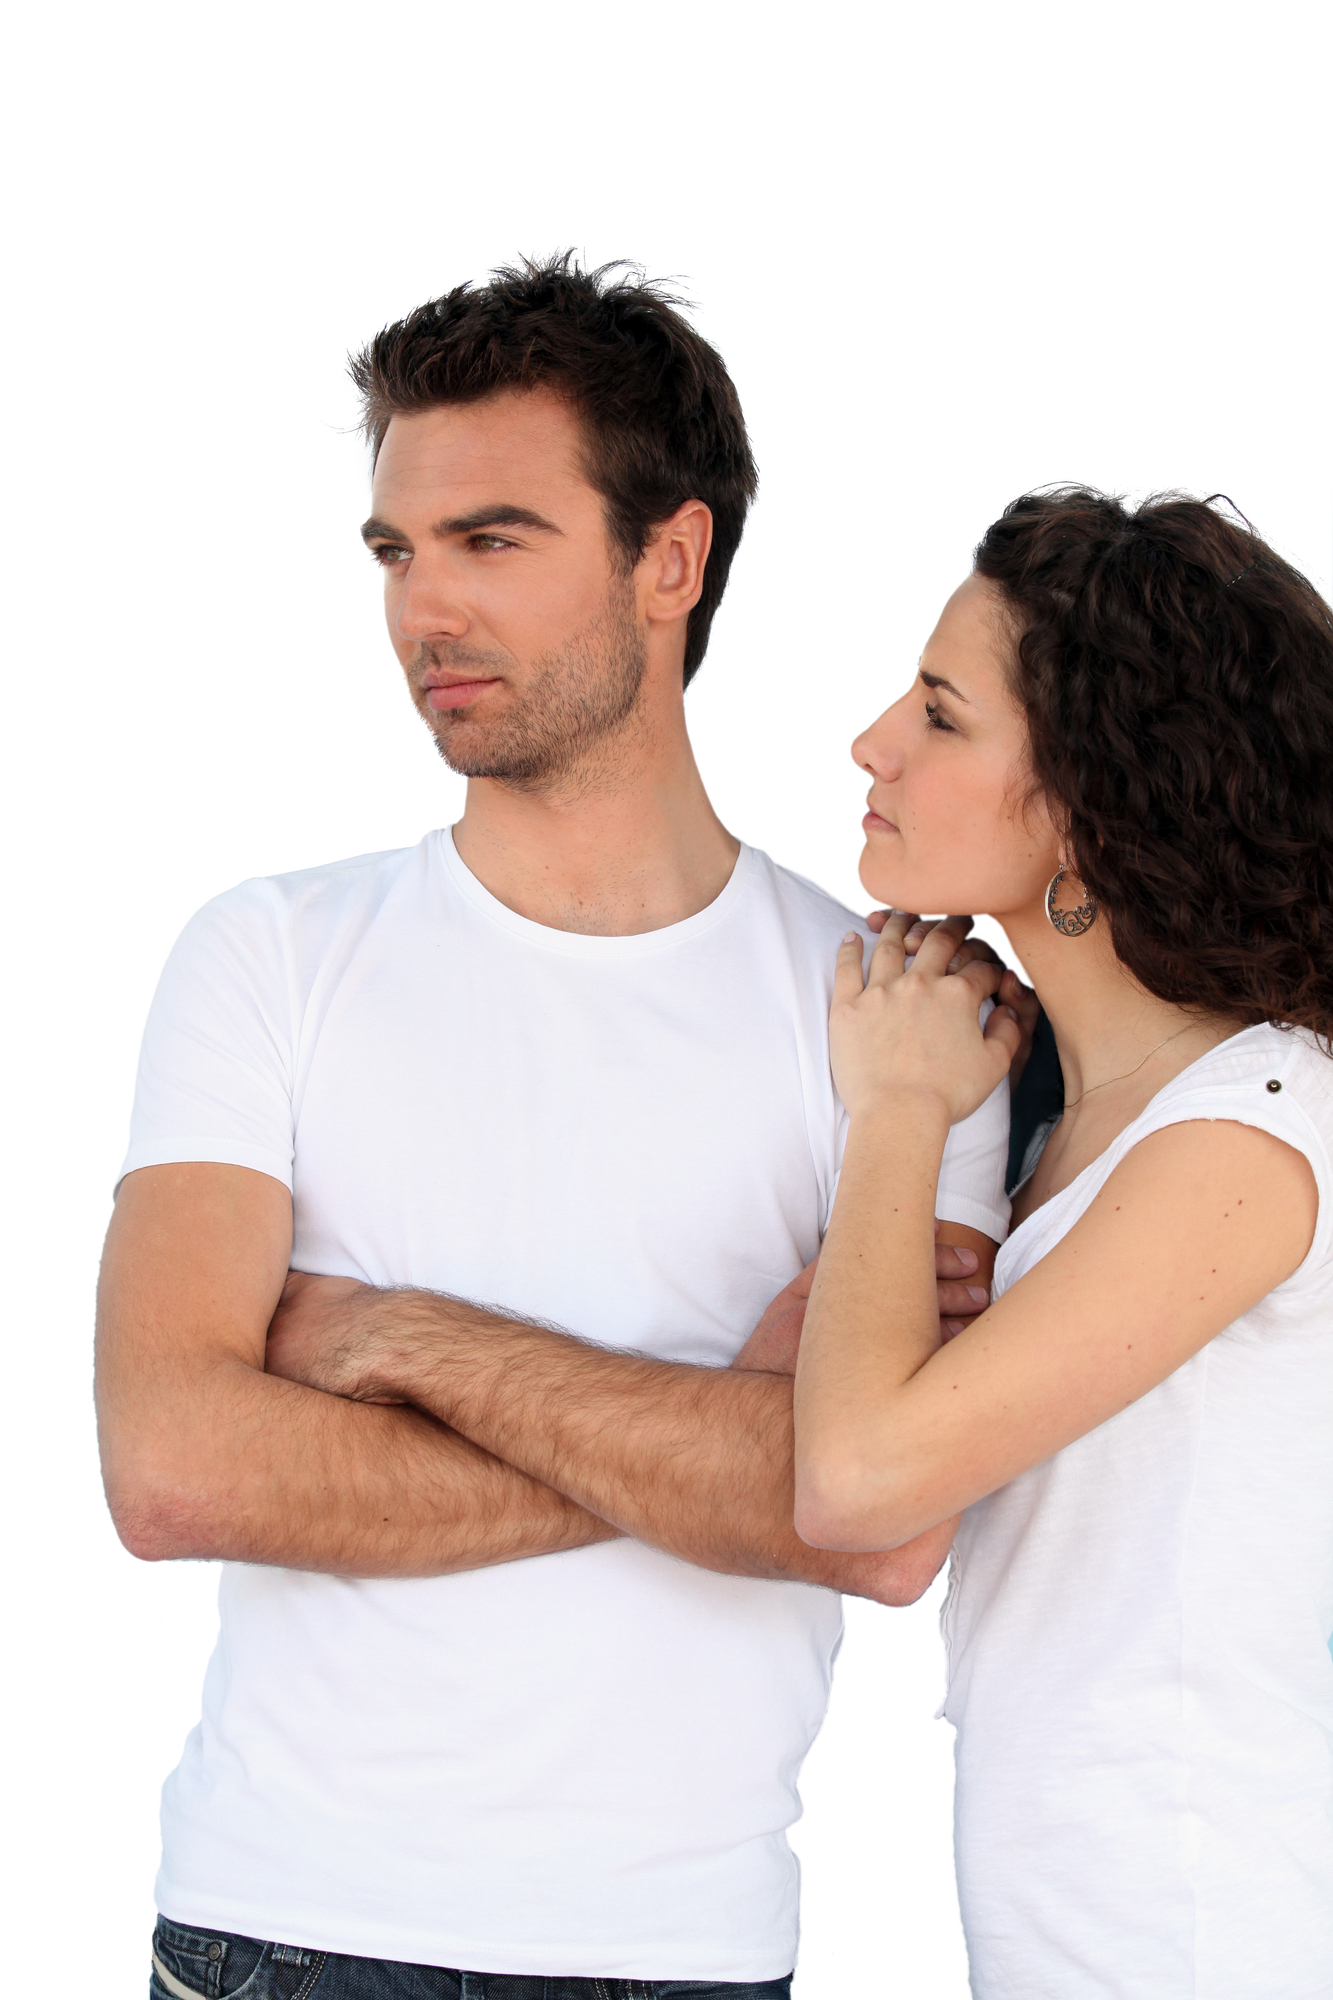 A Relationship Counselor Explains What A Setup Question Is